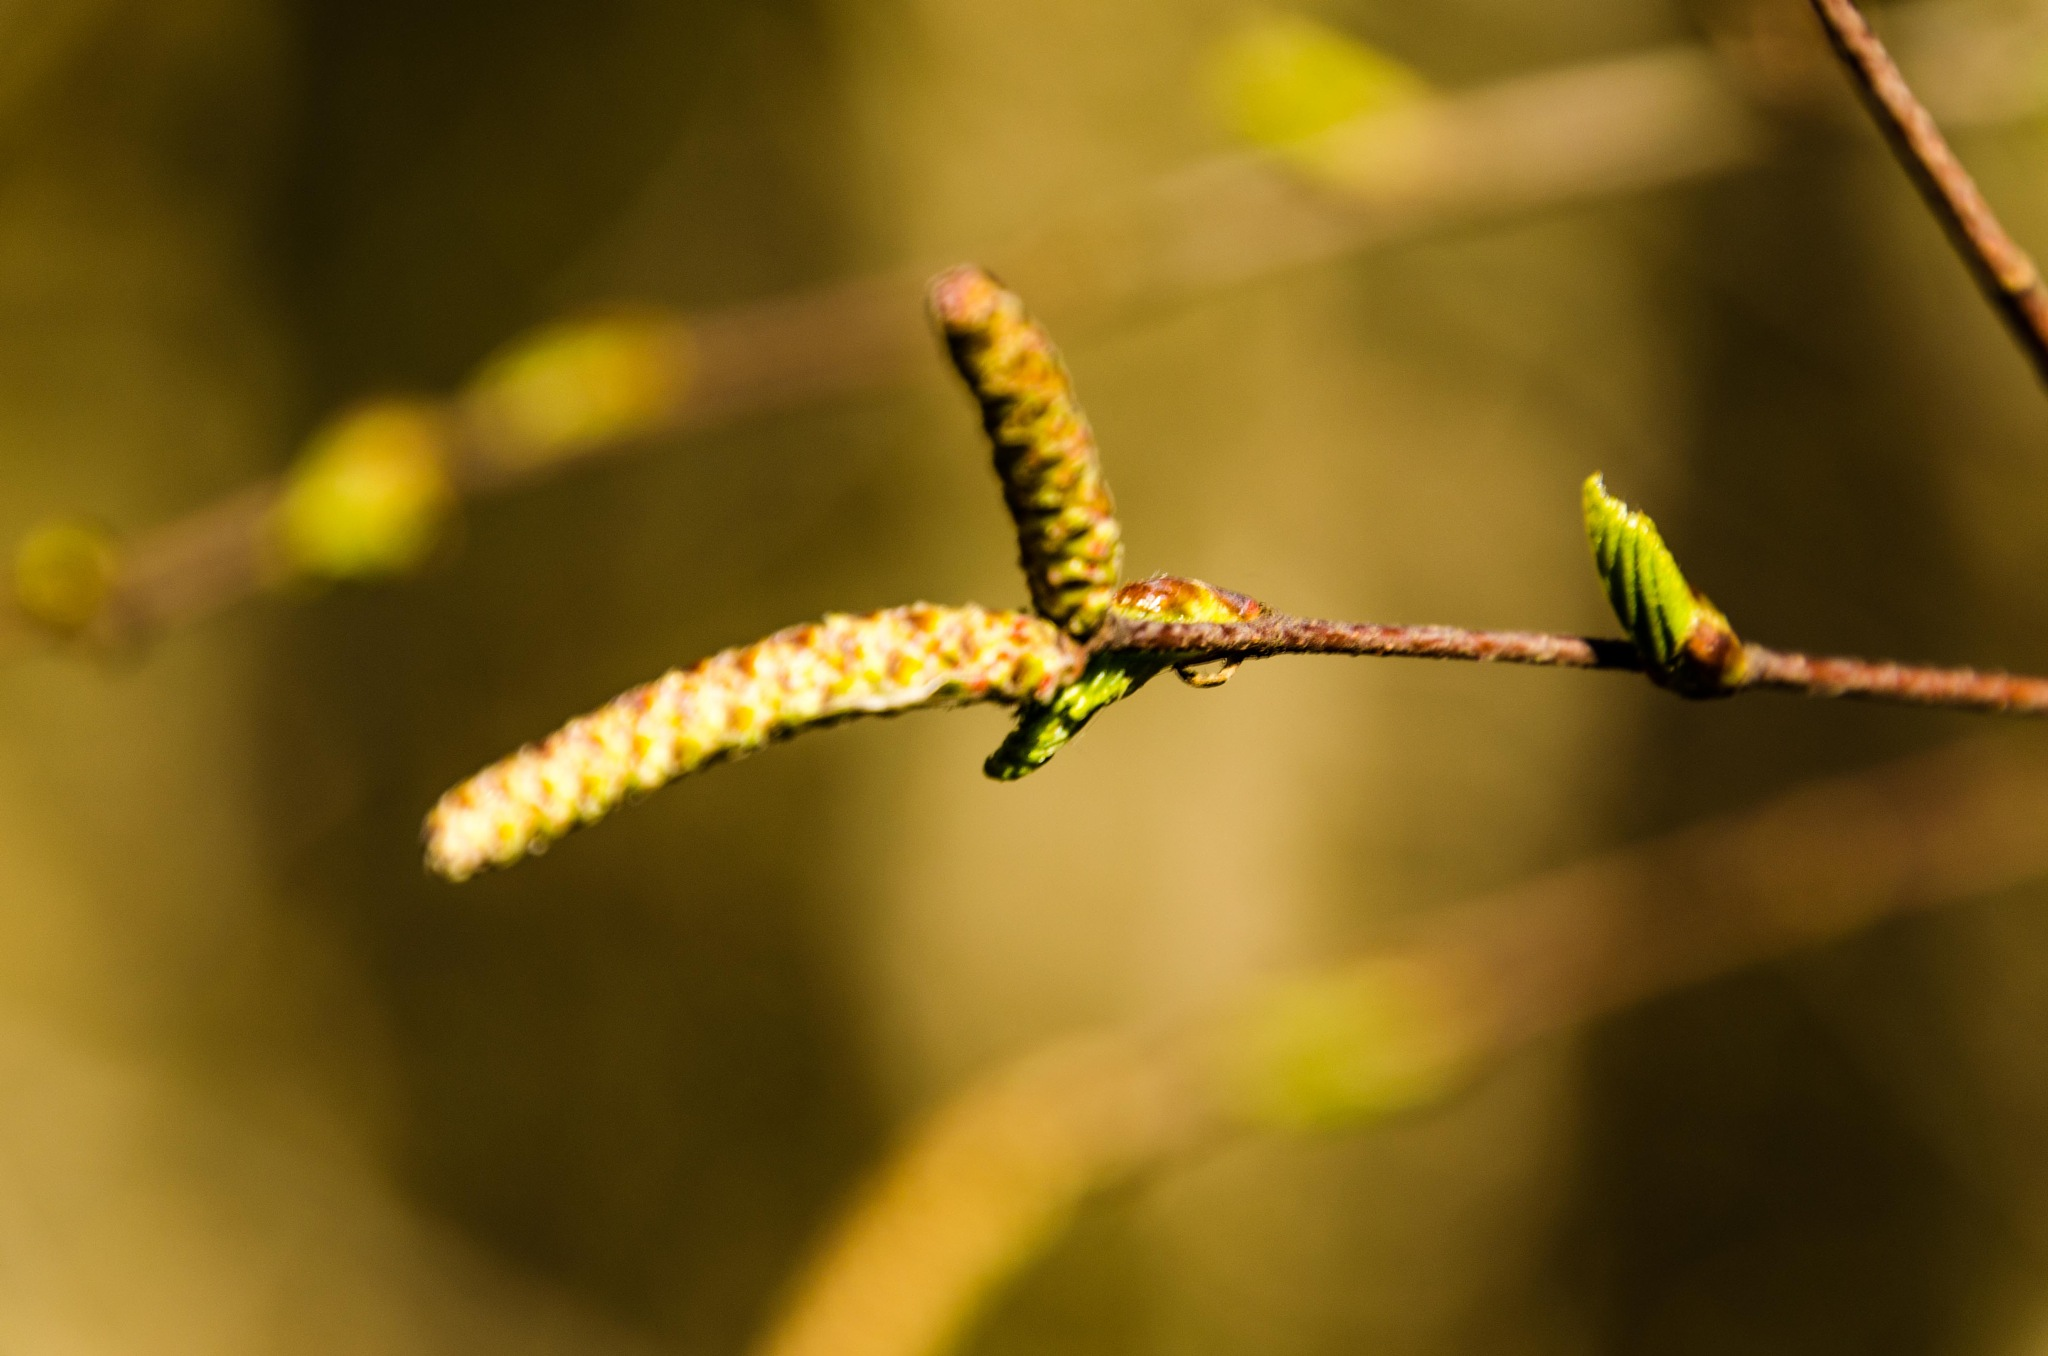 Signs of spring by Johnny Lythell